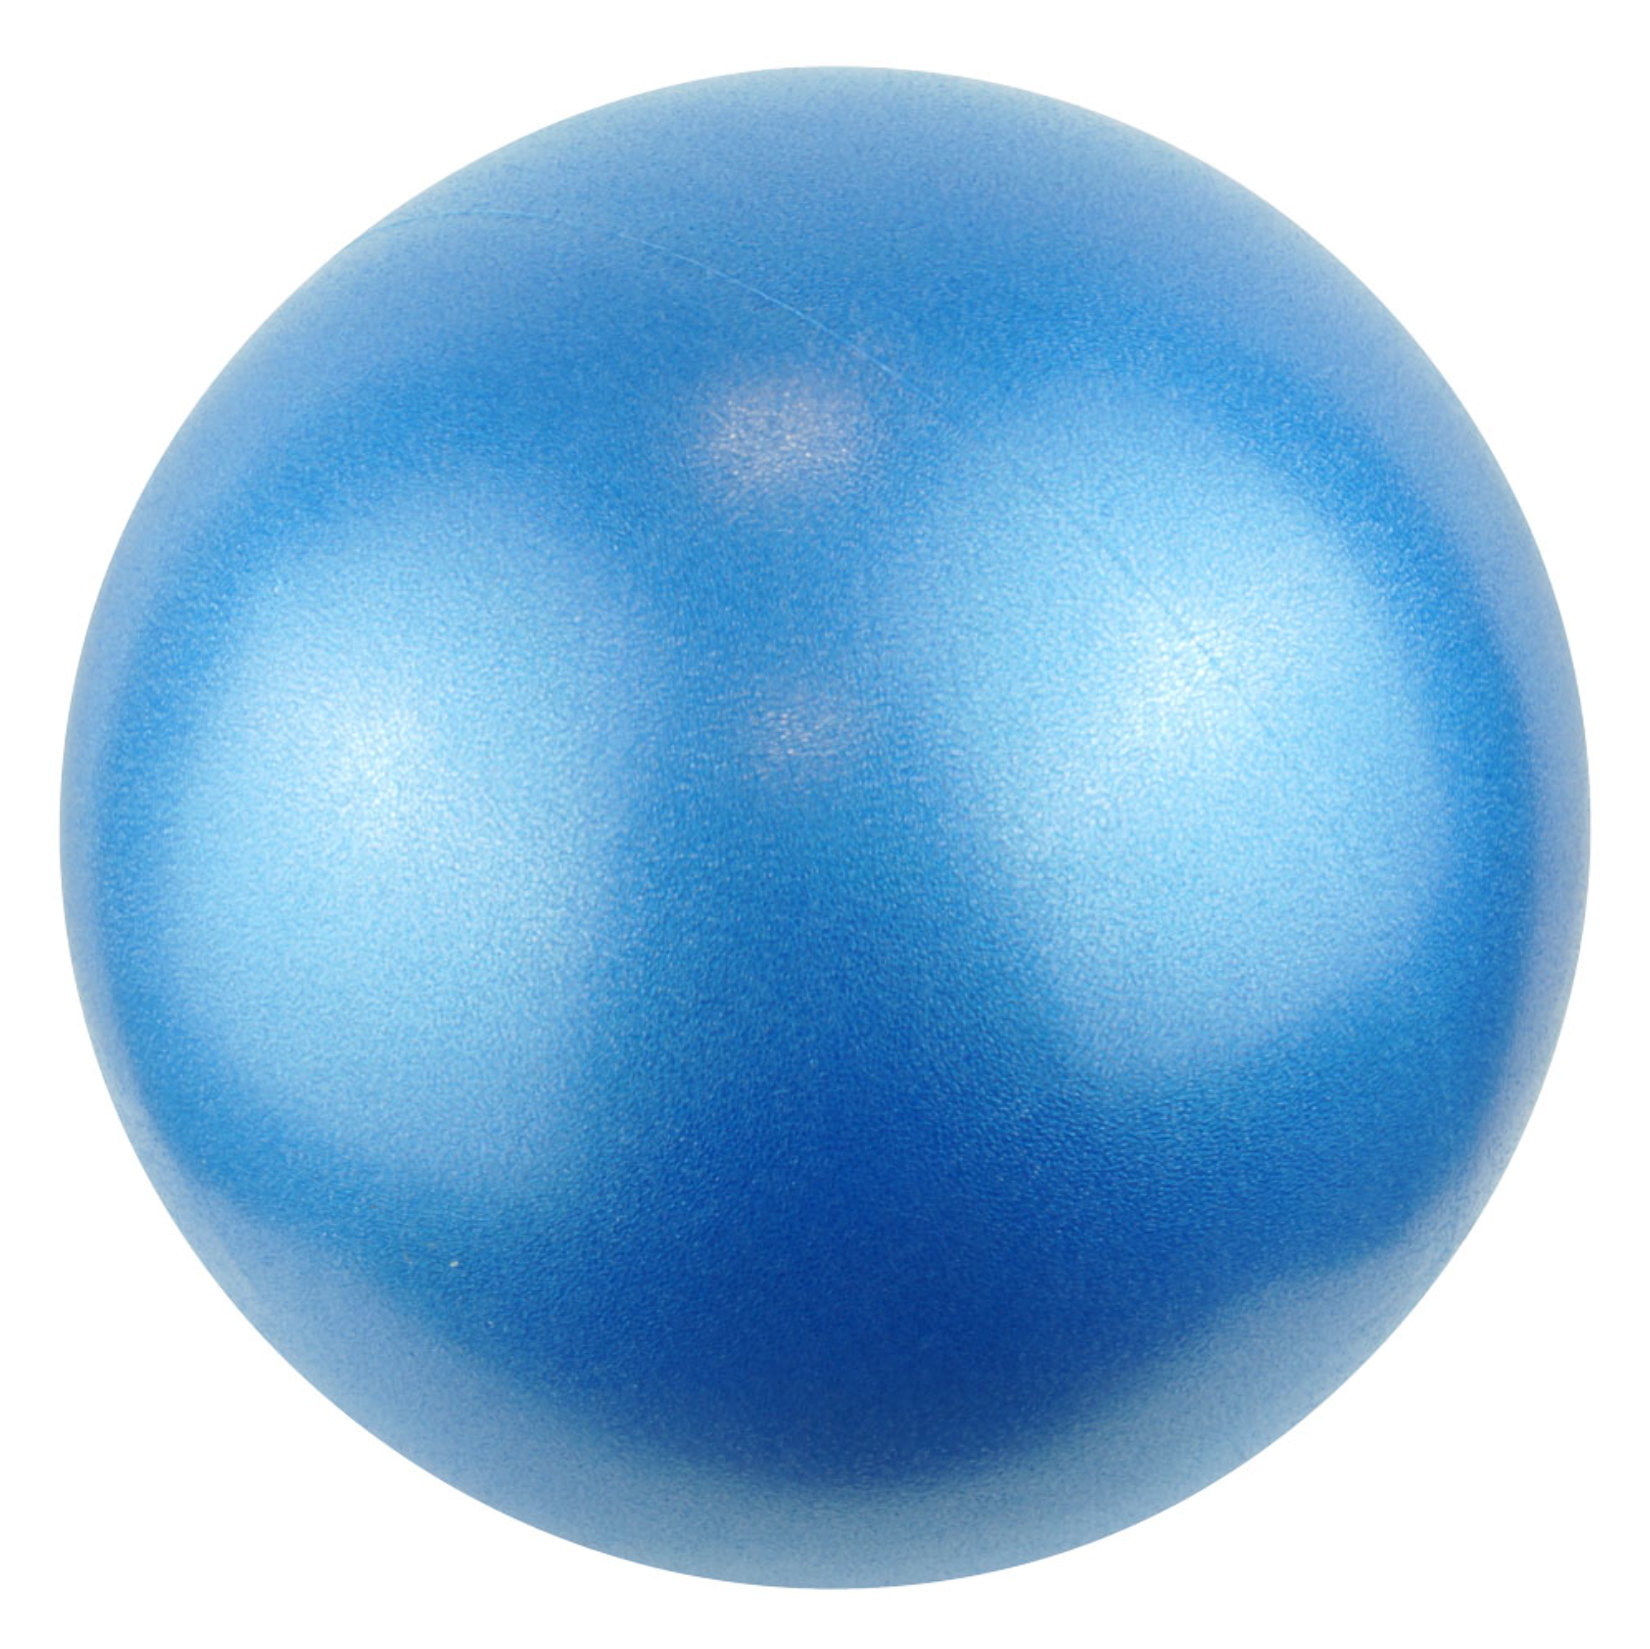 Urban-Fitness Urban Fitness Pilates Ball Blue